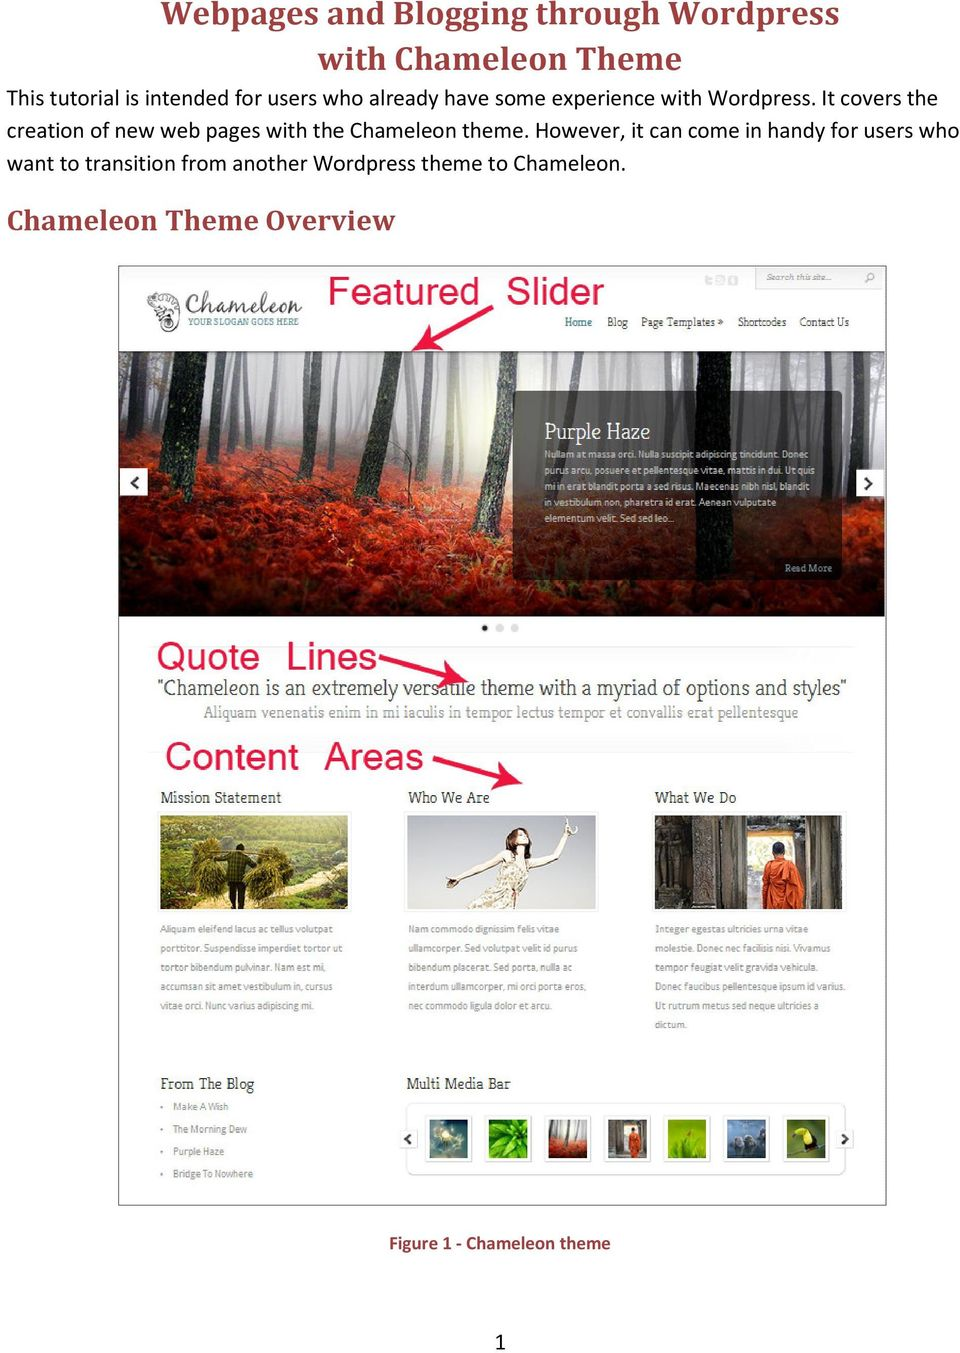 It covers the creation of new web pages with the Chameleon theme.